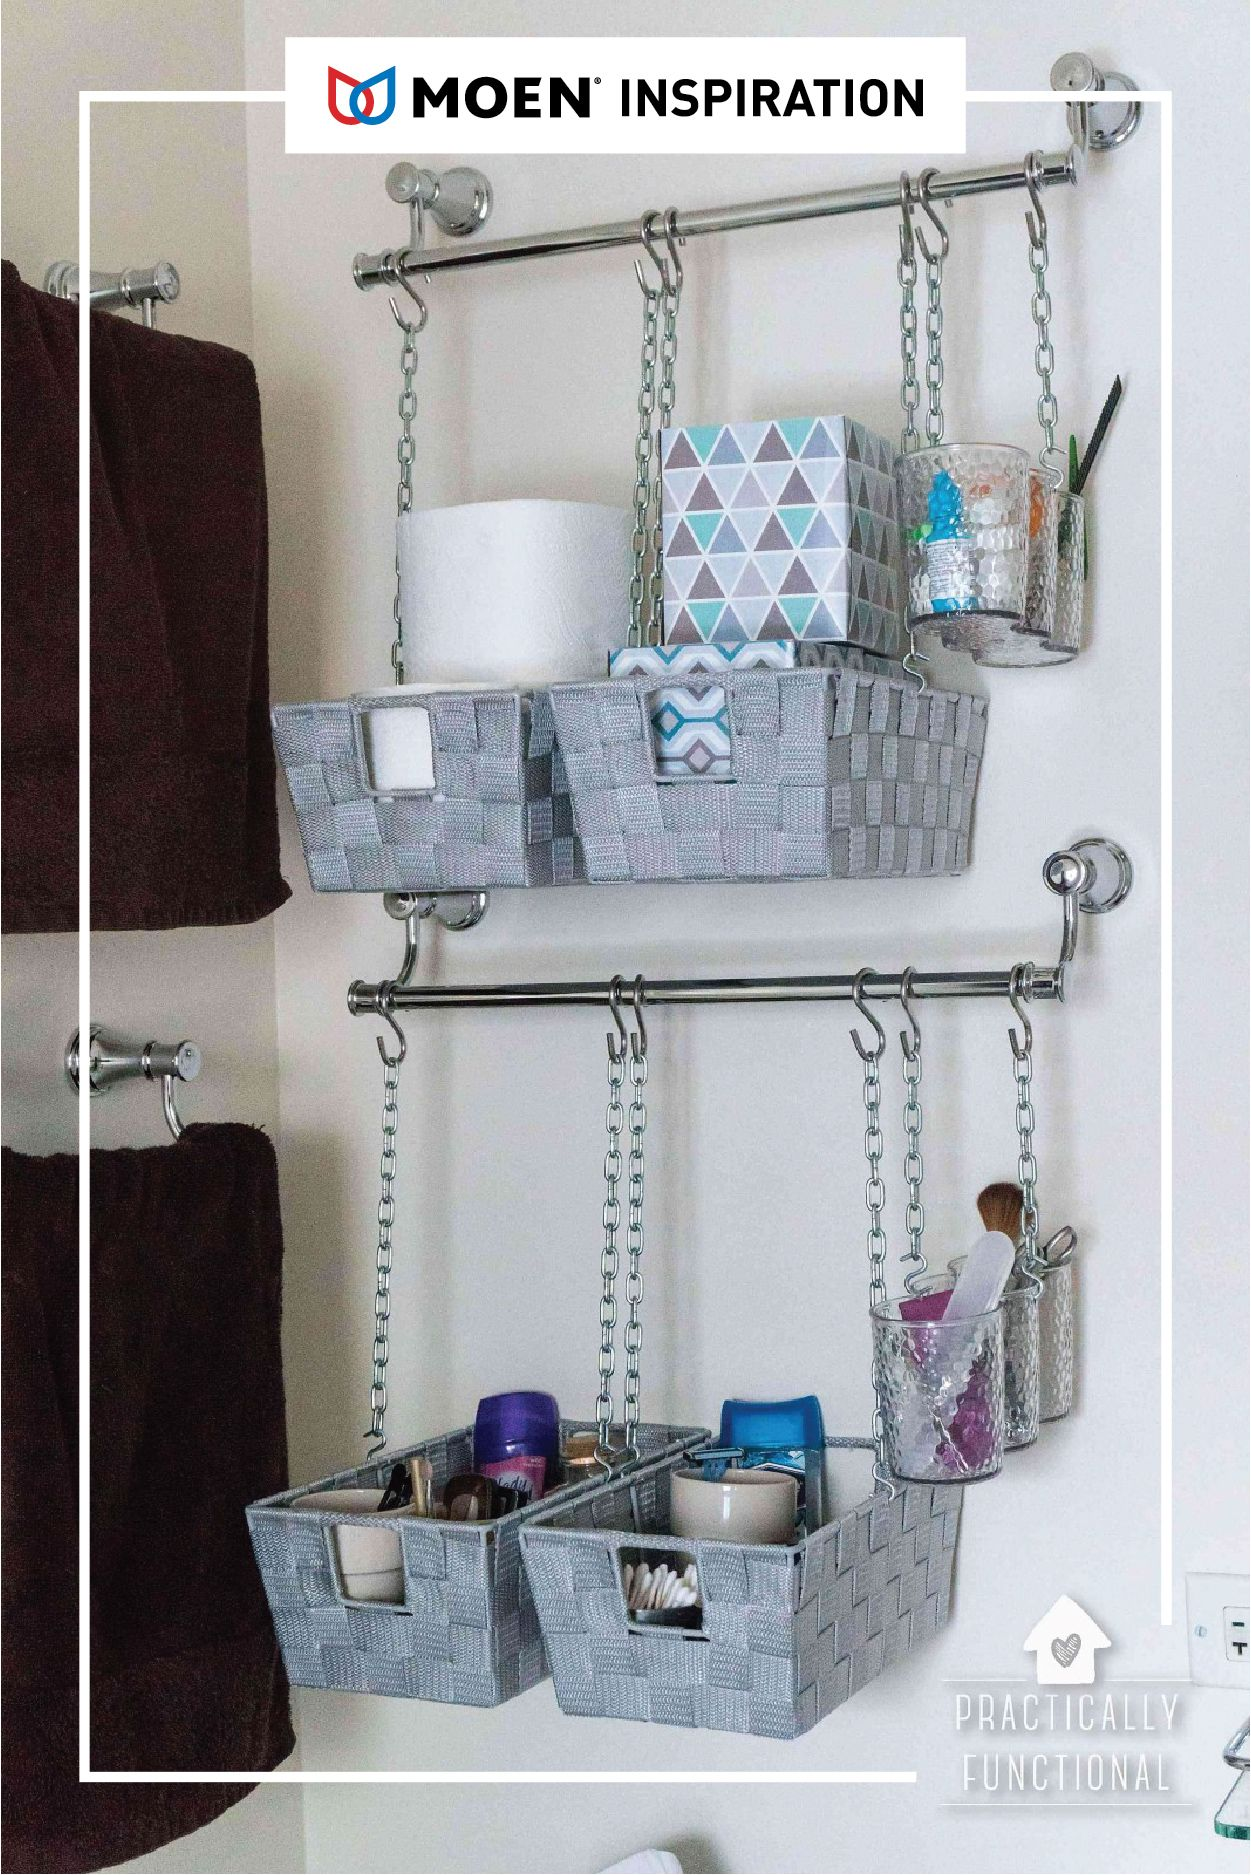 Home Hack For Your Bath Grab One Of Our Towel Bars And Follow This Tutorial From Practically Fun Hangeaufbewahrung Wc Lagerung Badezimmer Aufbewahrungssysteme